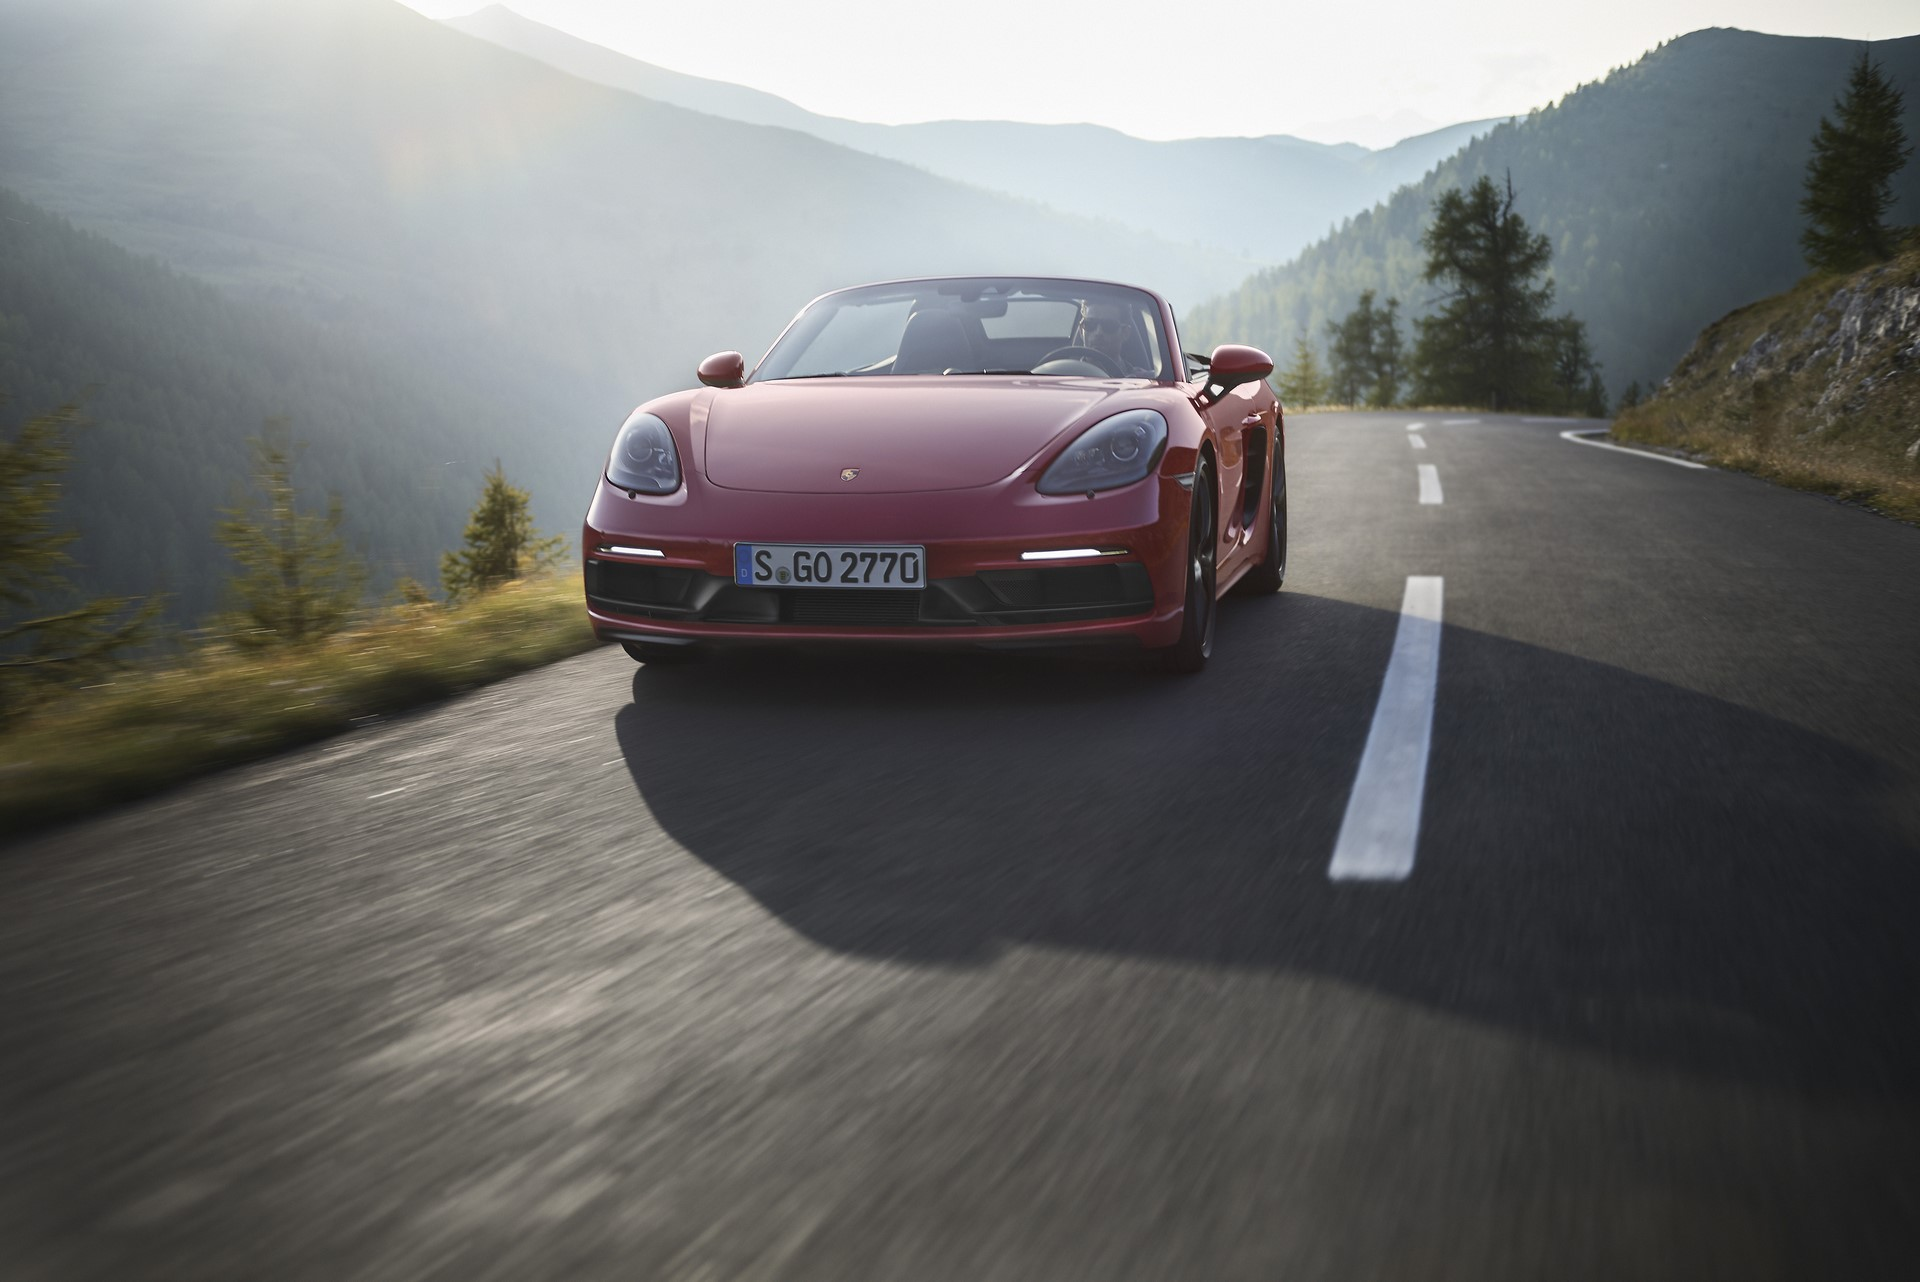 Porsche 718 Boxster GTS and 718 Cayman GTS 2018 (8)